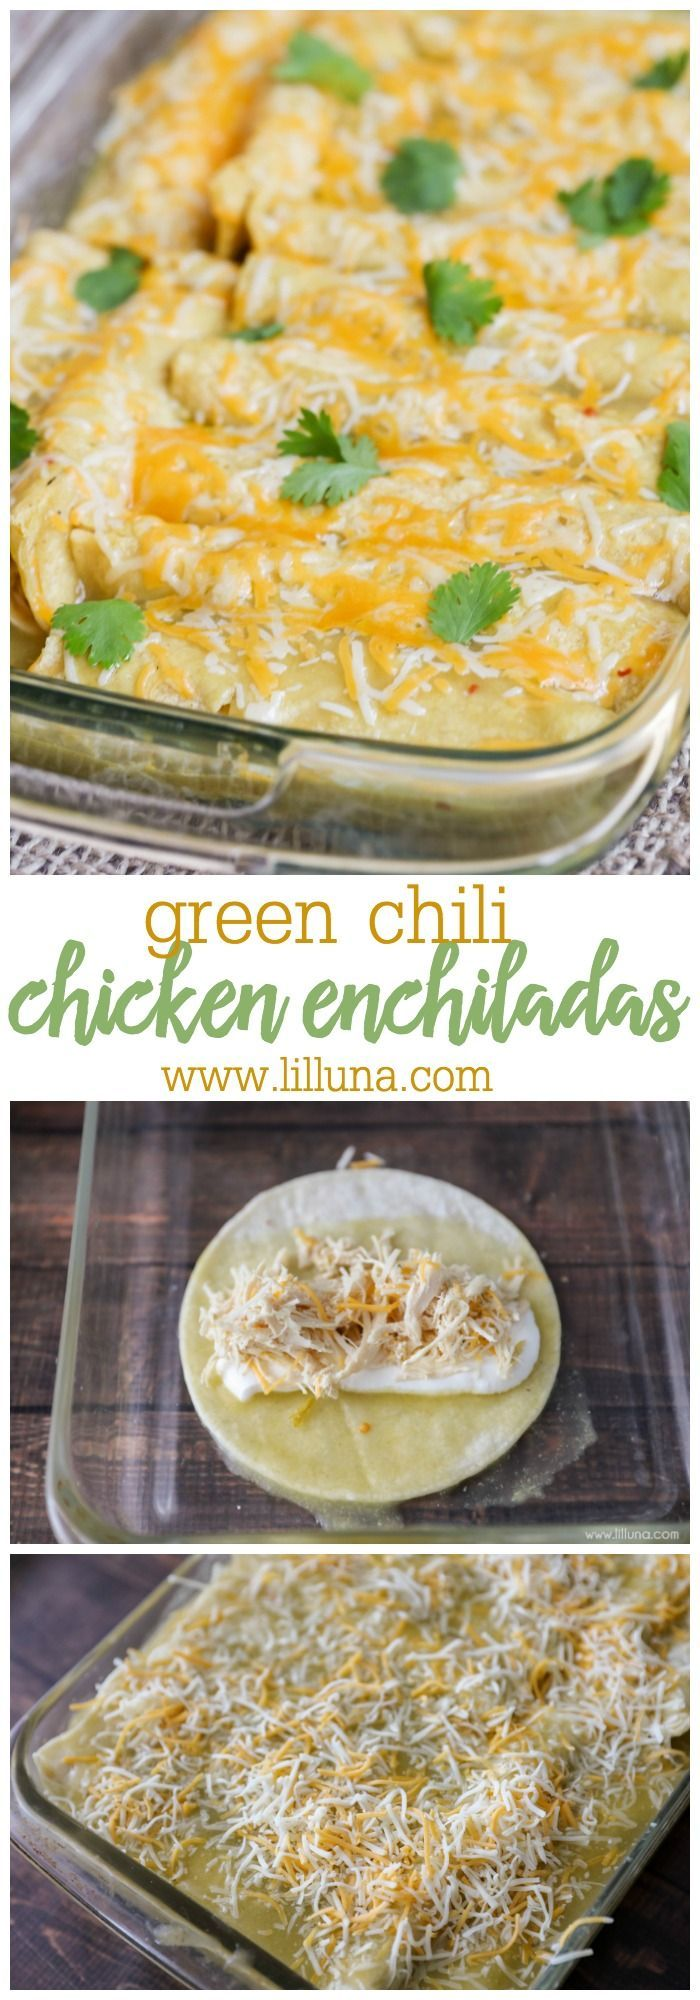 Chicken Enchilada One of our favorite Mexican dishes - Green Chile Chicken Enchiladas recipe!! Corn tortillas stuffed with chicken, cheese, las palmas green chile enchilada sauce, sour cream, and green chiles, topped with more sauce and cheese!De Palma  De Palma or DePalma or De Palmas may refer to: